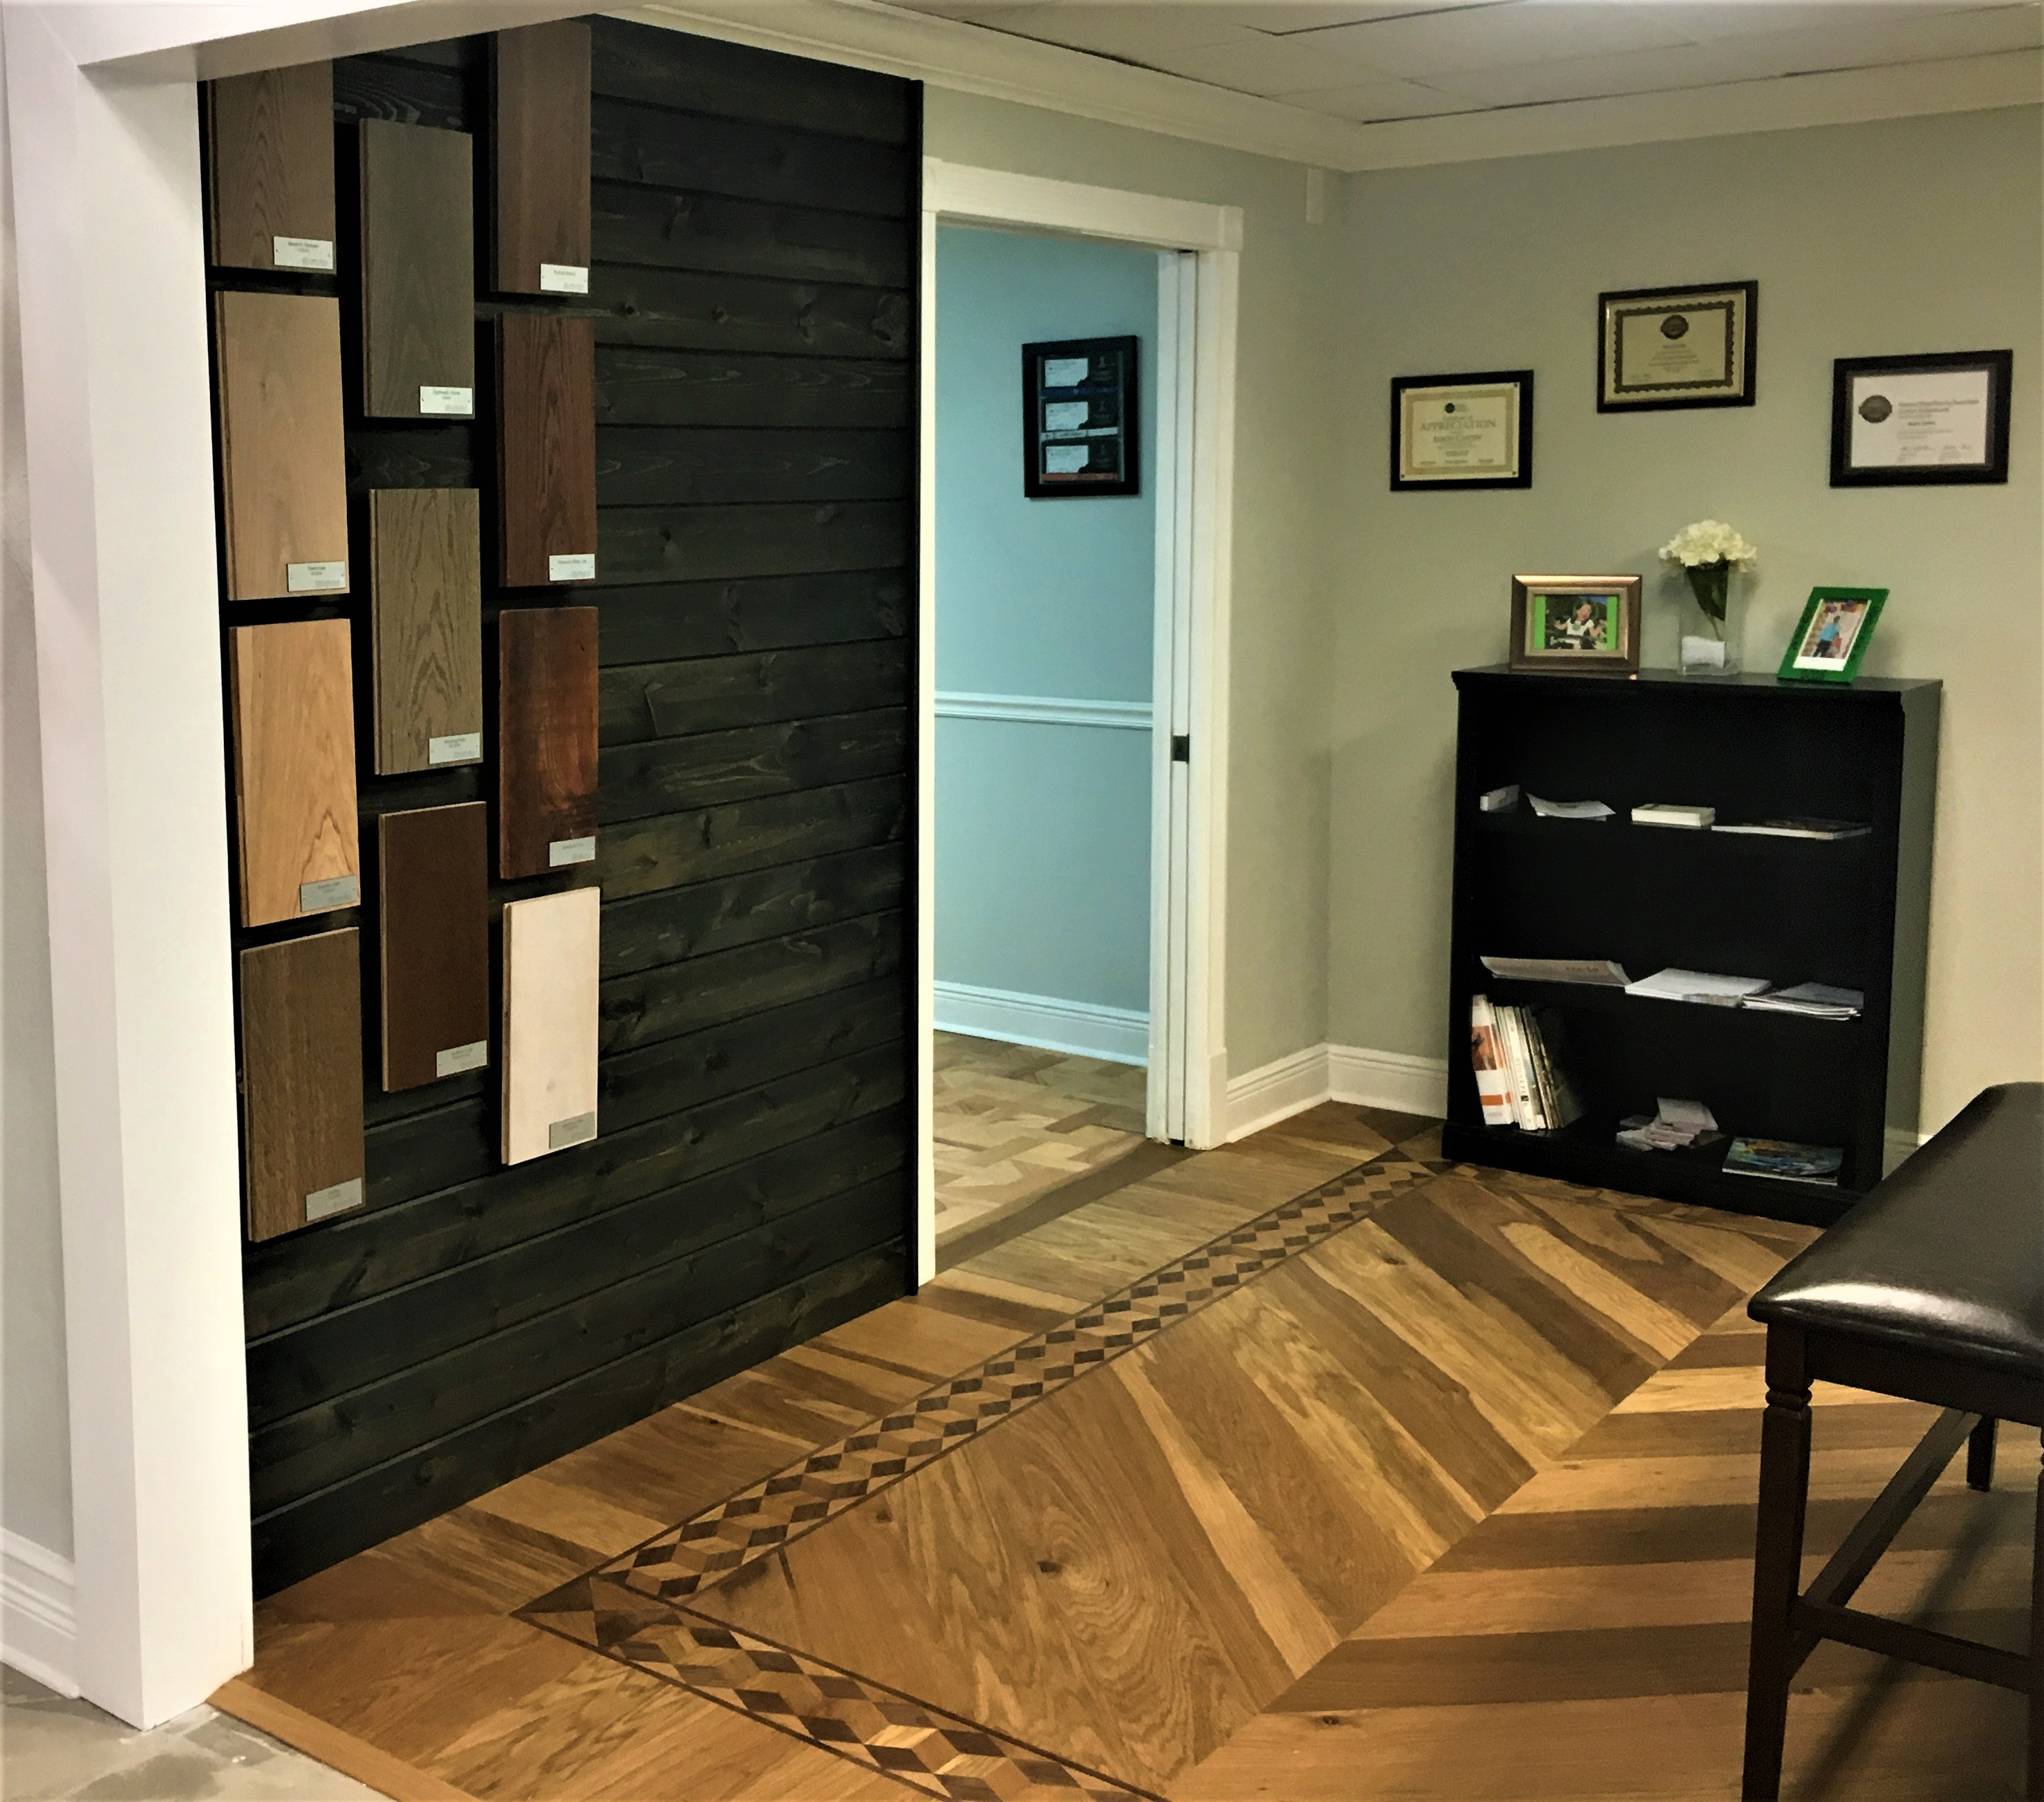 Done Right Flooring and Cabinets image 6